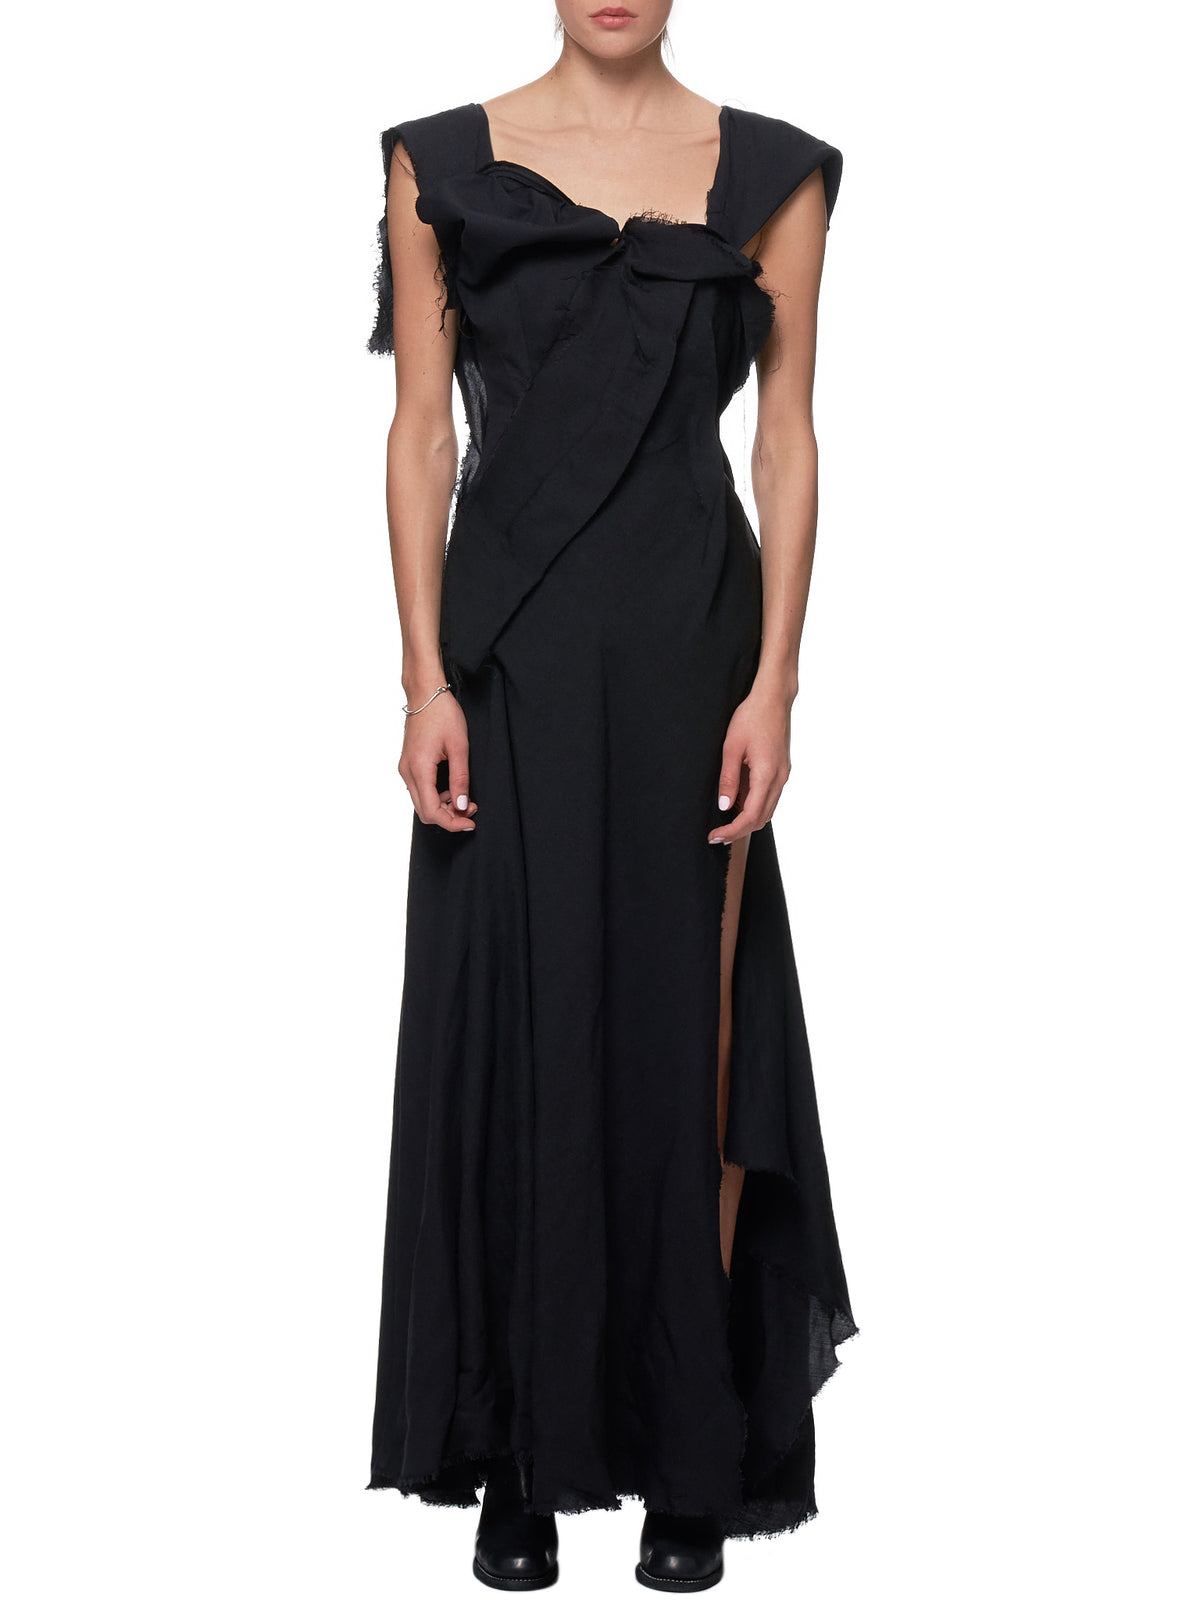 Panel Dress (FH-D33-200-BLACK)